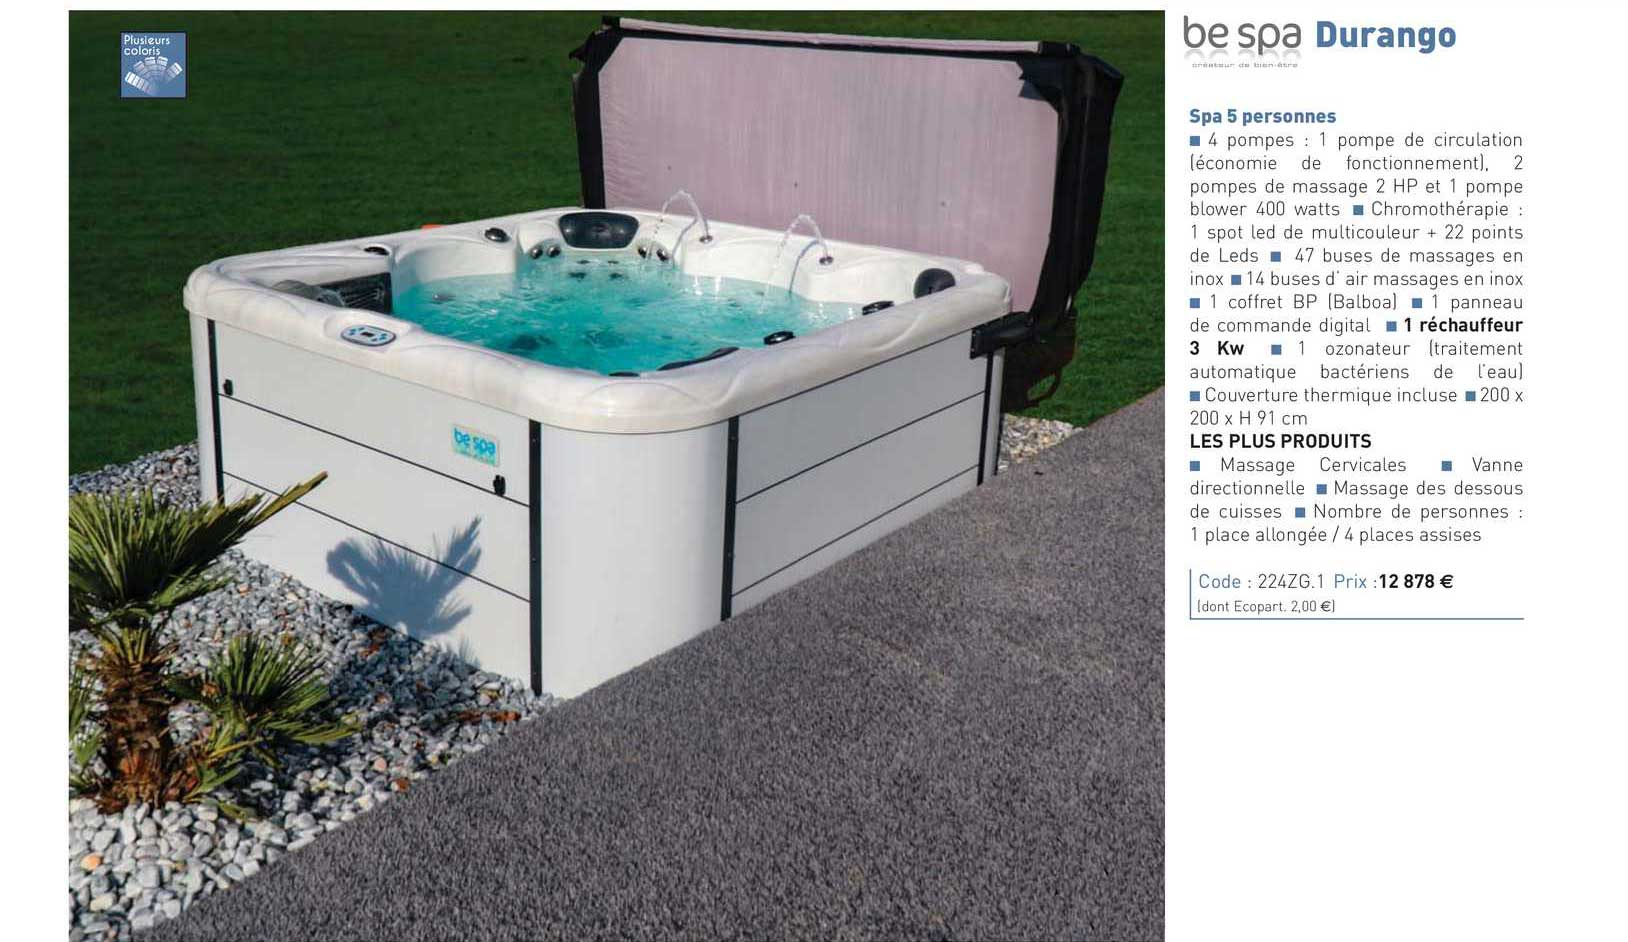 Https Www Icatalogue Fr I Mr Bricolage Spa Bora Bora 4 Personnes Lumix 331973